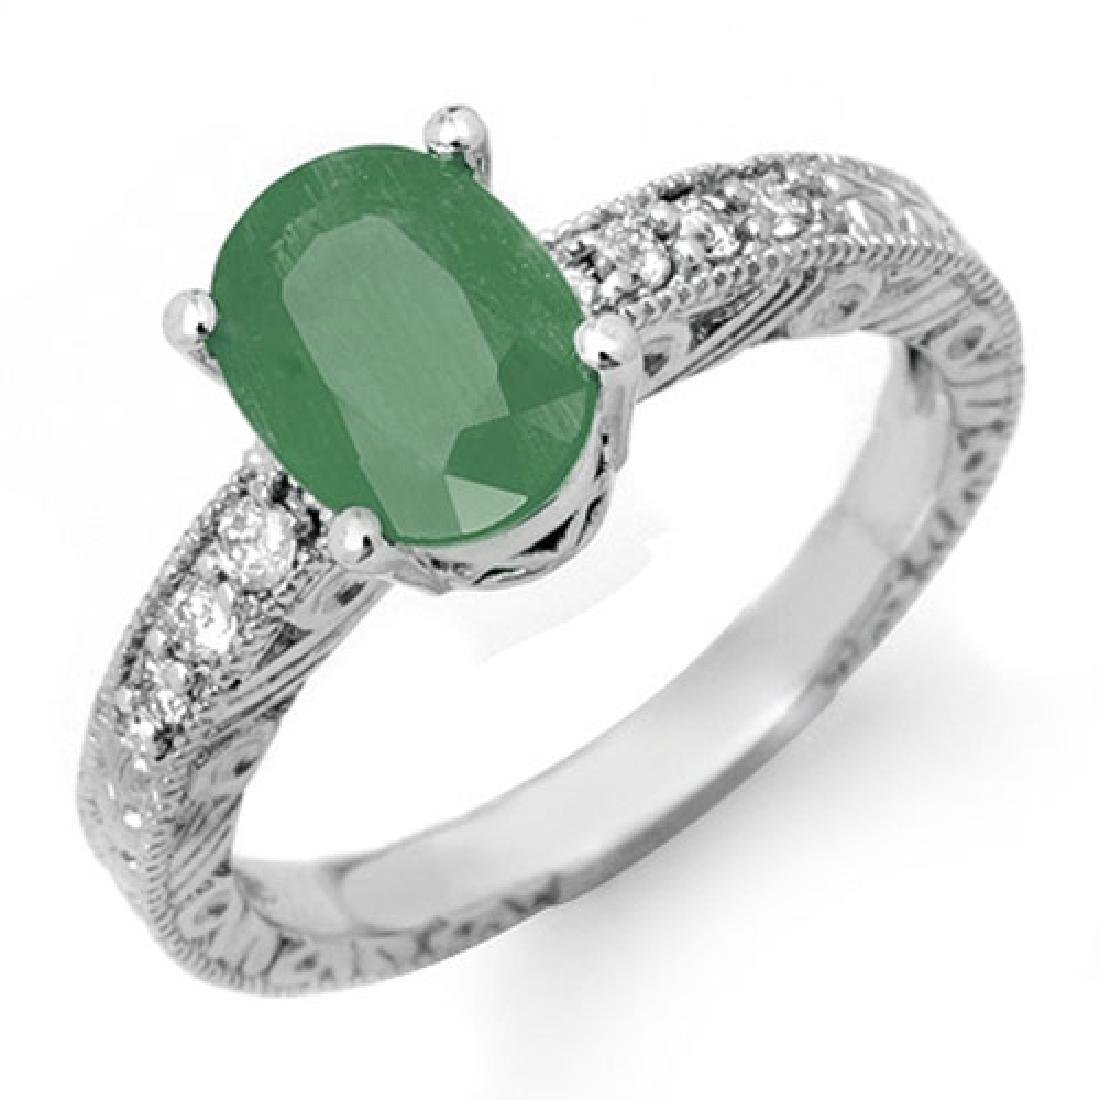 2.56 CTW Emerald & Diamond Ring 18K White Gold